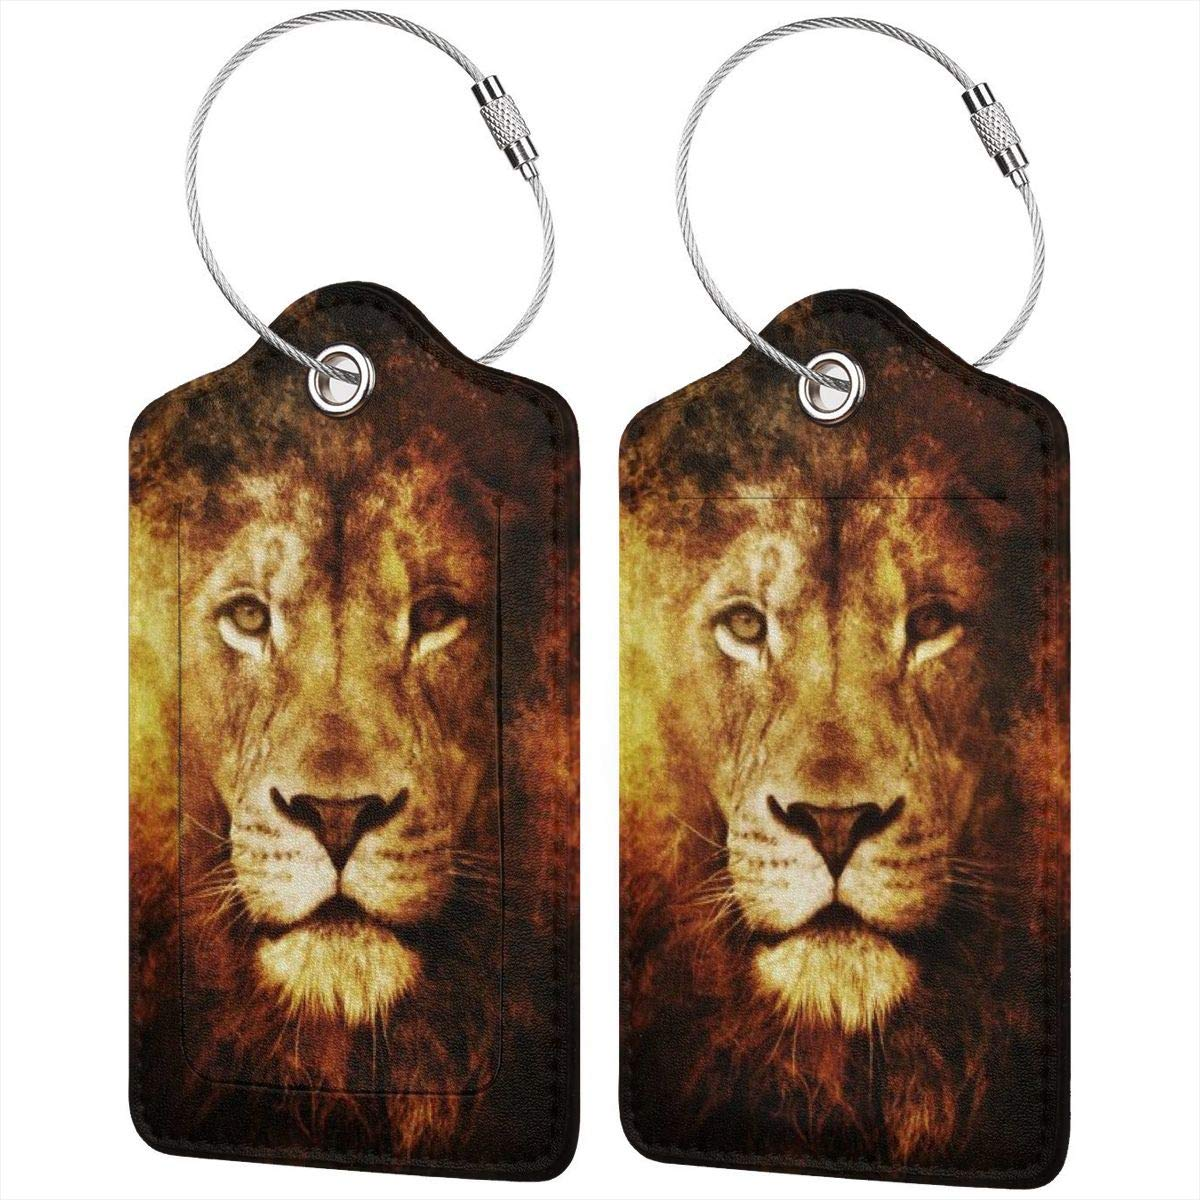 Lion Face Luggage Tag Label Travel Bag Label With Privacy Cover Luggage Tag Leather Personalized Suitcase Tag Travel Accessories